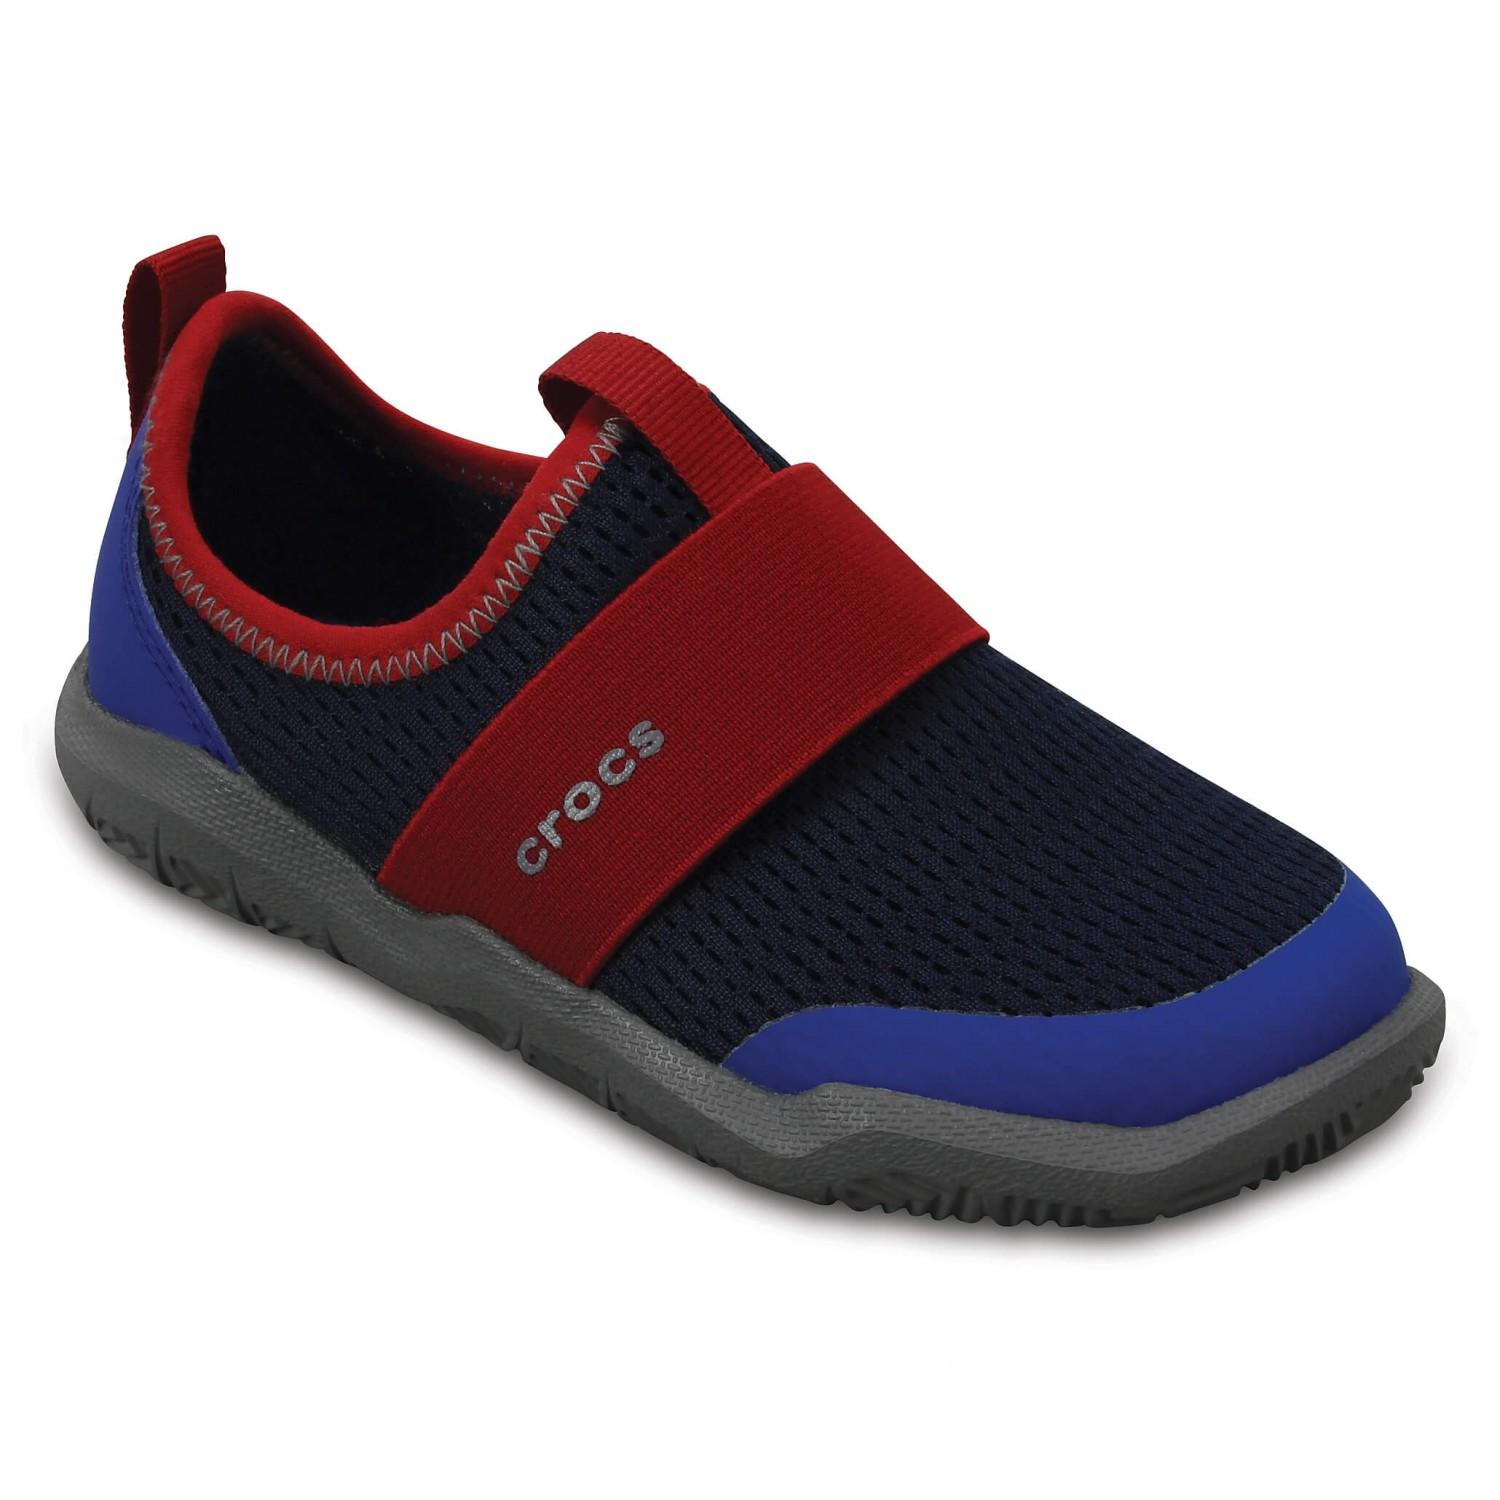 0f8d21a5cefd Crocs - Kid s Swiftwater Easy-On Shoe - Sandals